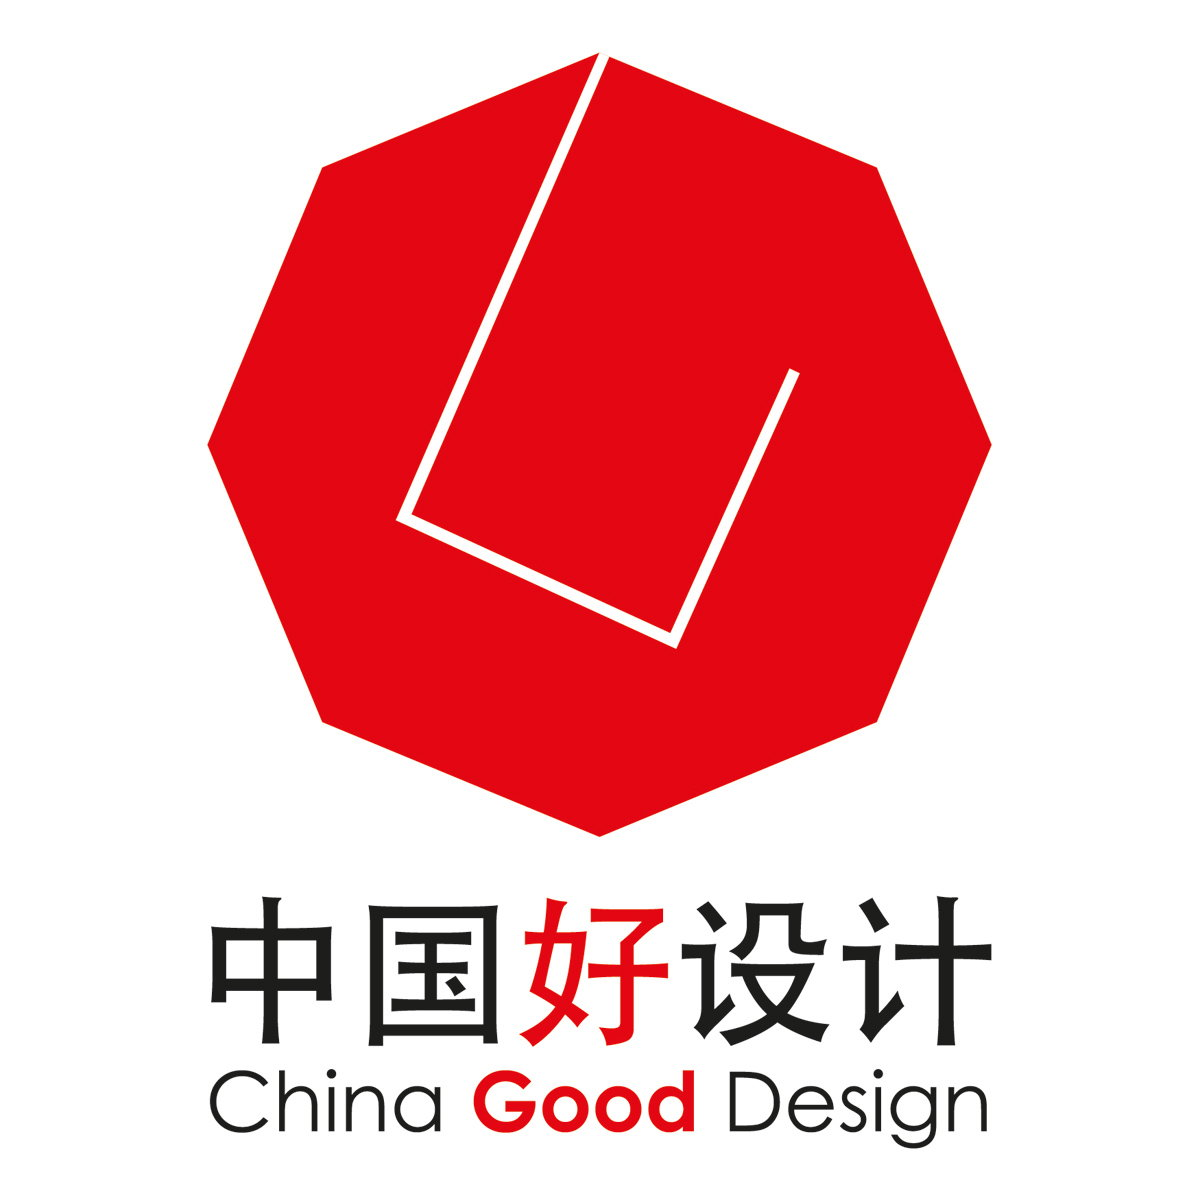 China Good Design 2018